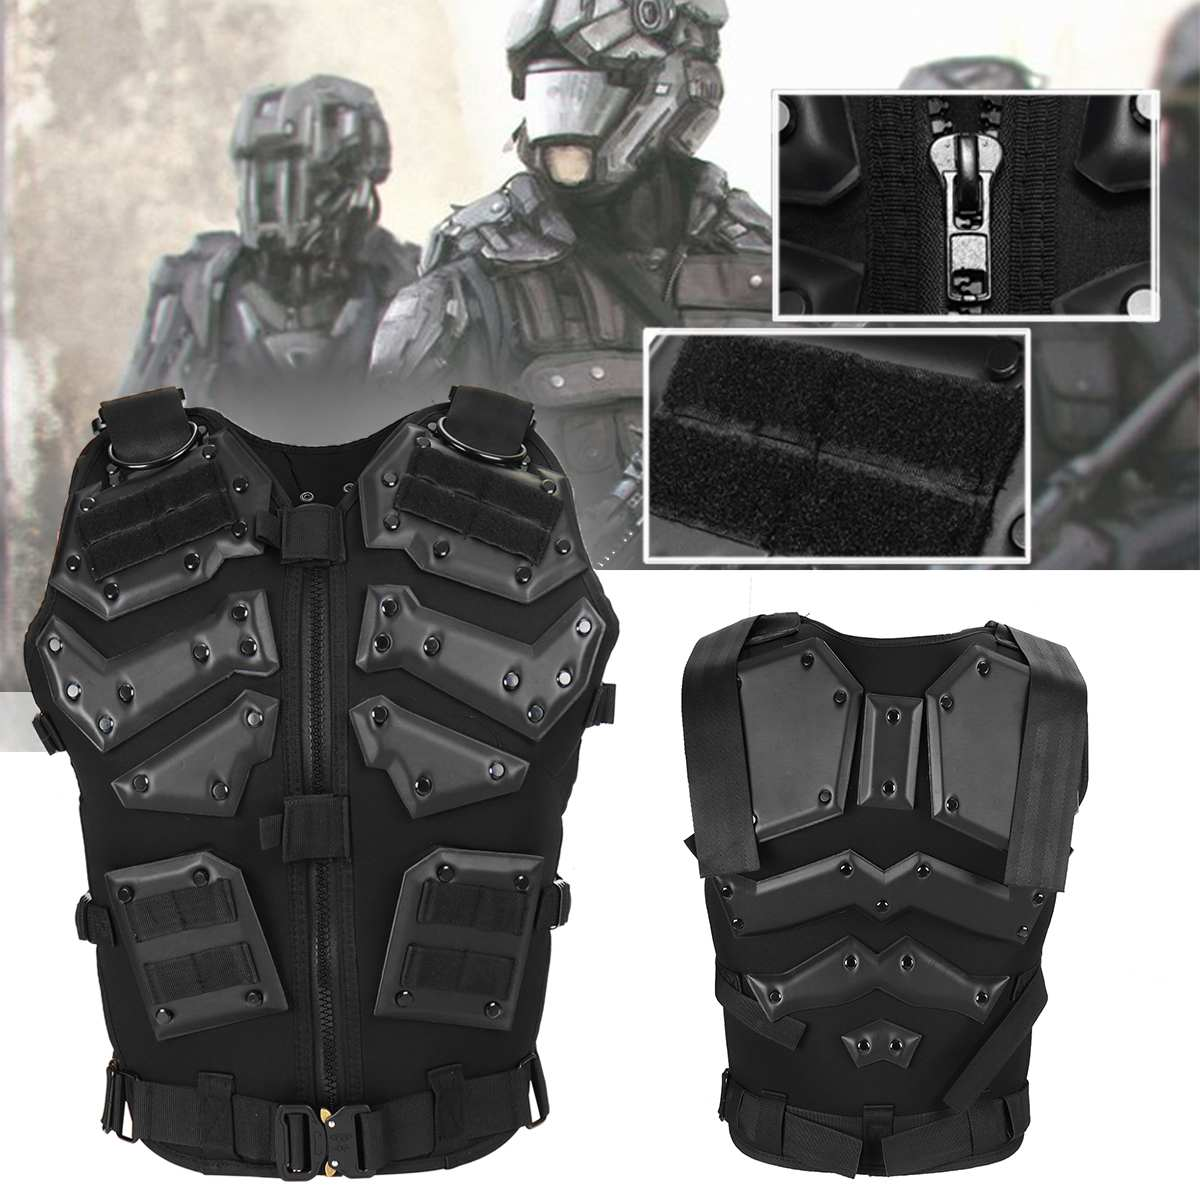 Gilet tactique armure corporelle en plein air Airsoft Paintball formation équipement de Protection gilets Molle vêtements de plein air gilet de chasse